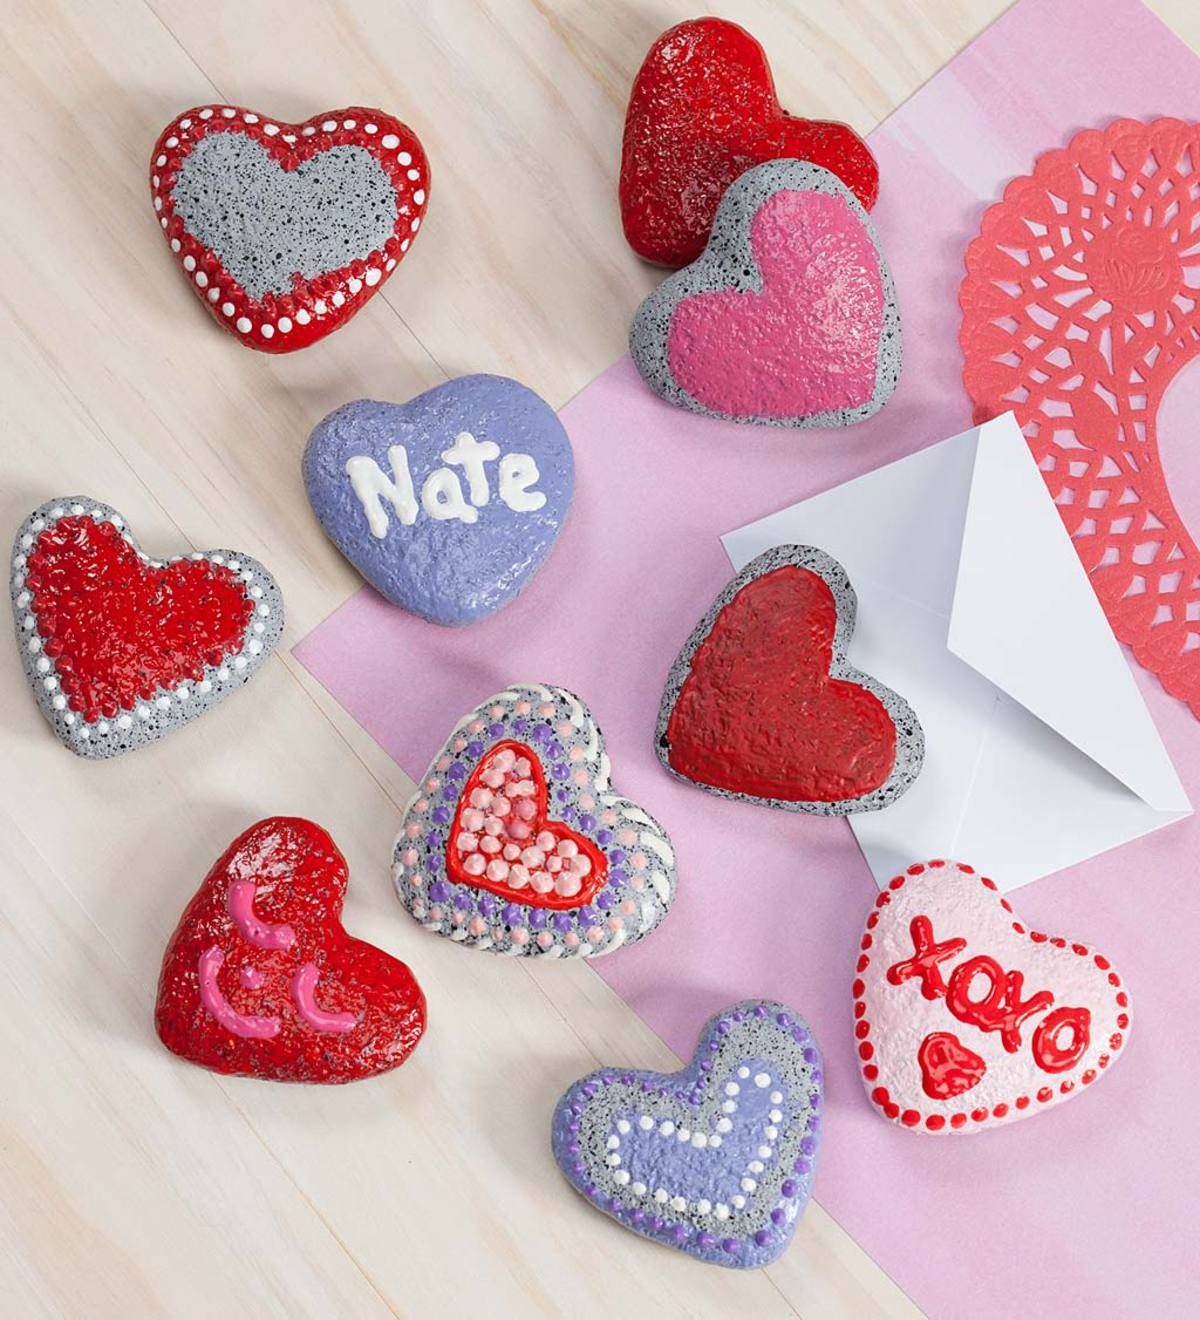 Color Pops® Paint-Your-Own Rock Hearts